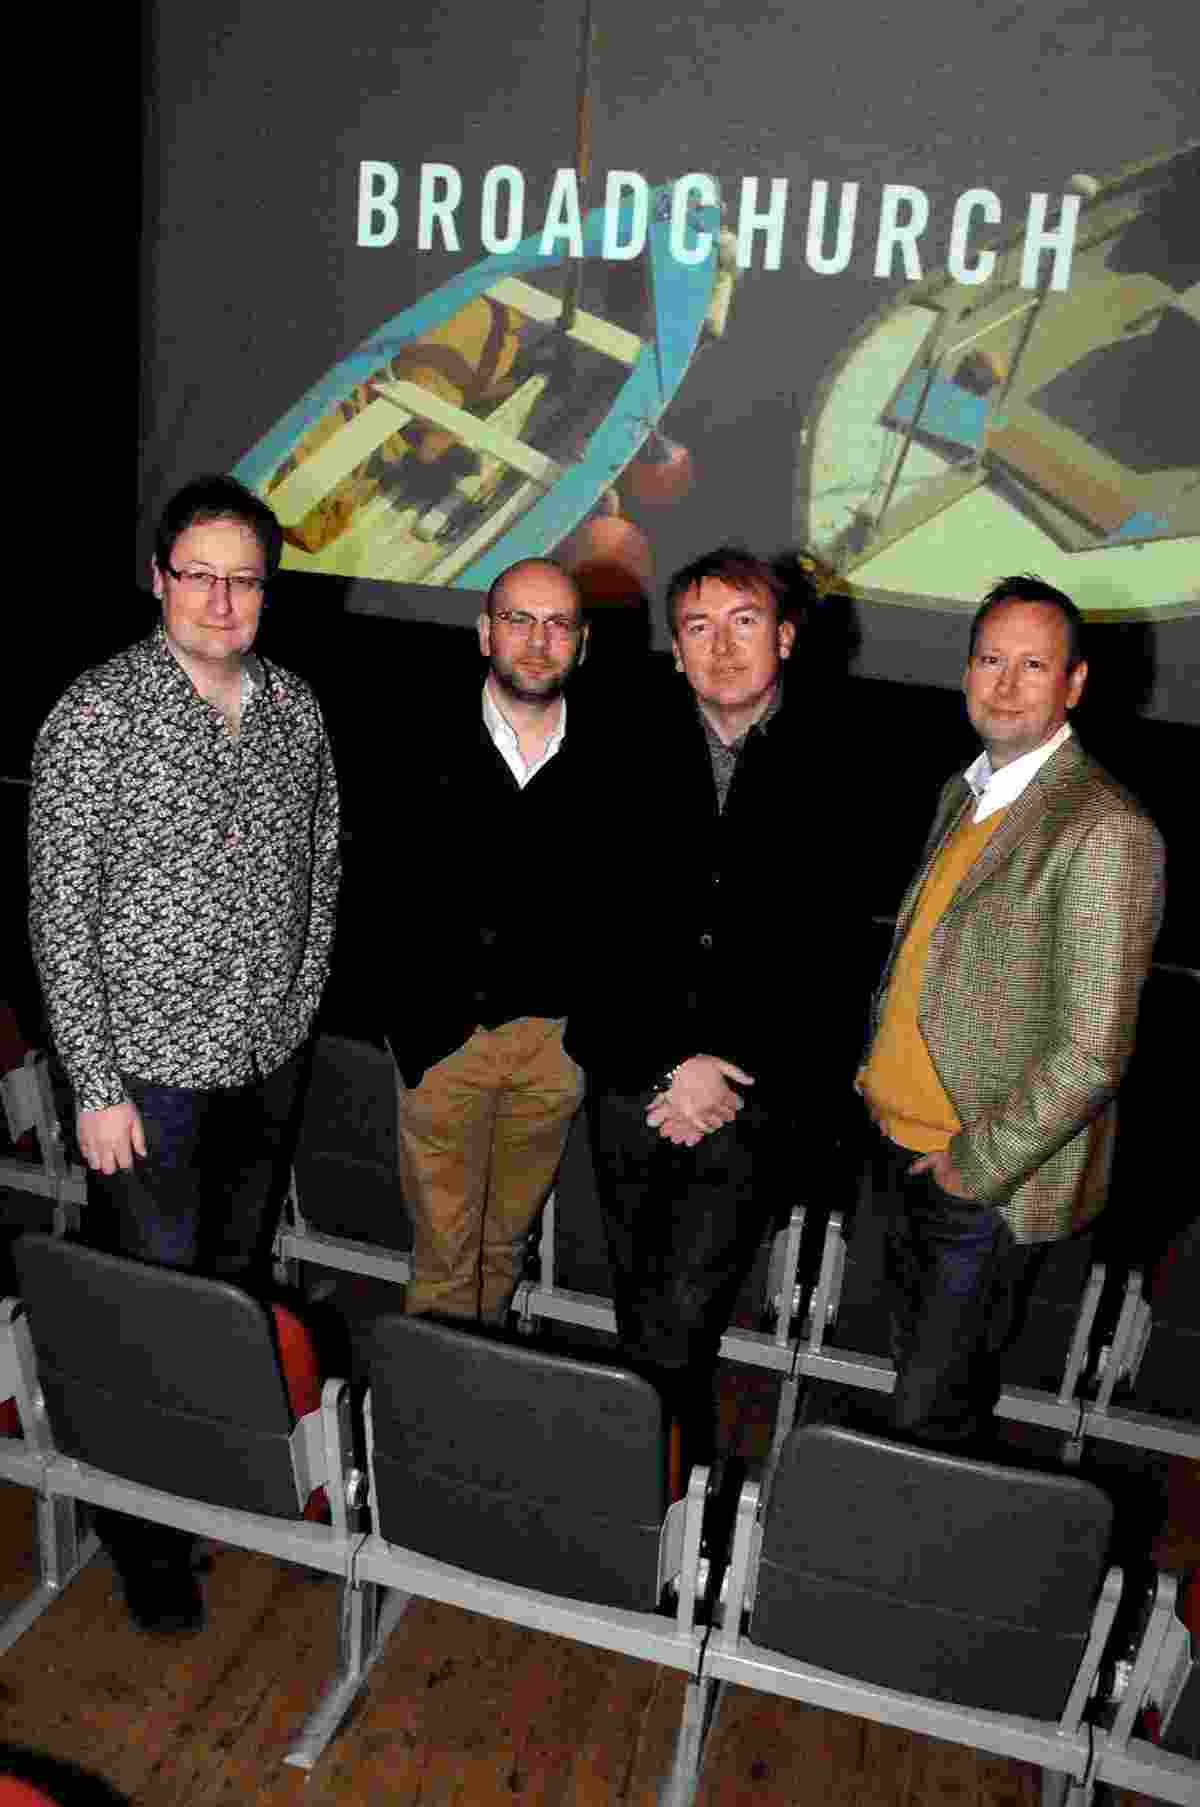 writer Chris Chibnall, producer Richard Stokes, director James Strong and editor Mike Jones